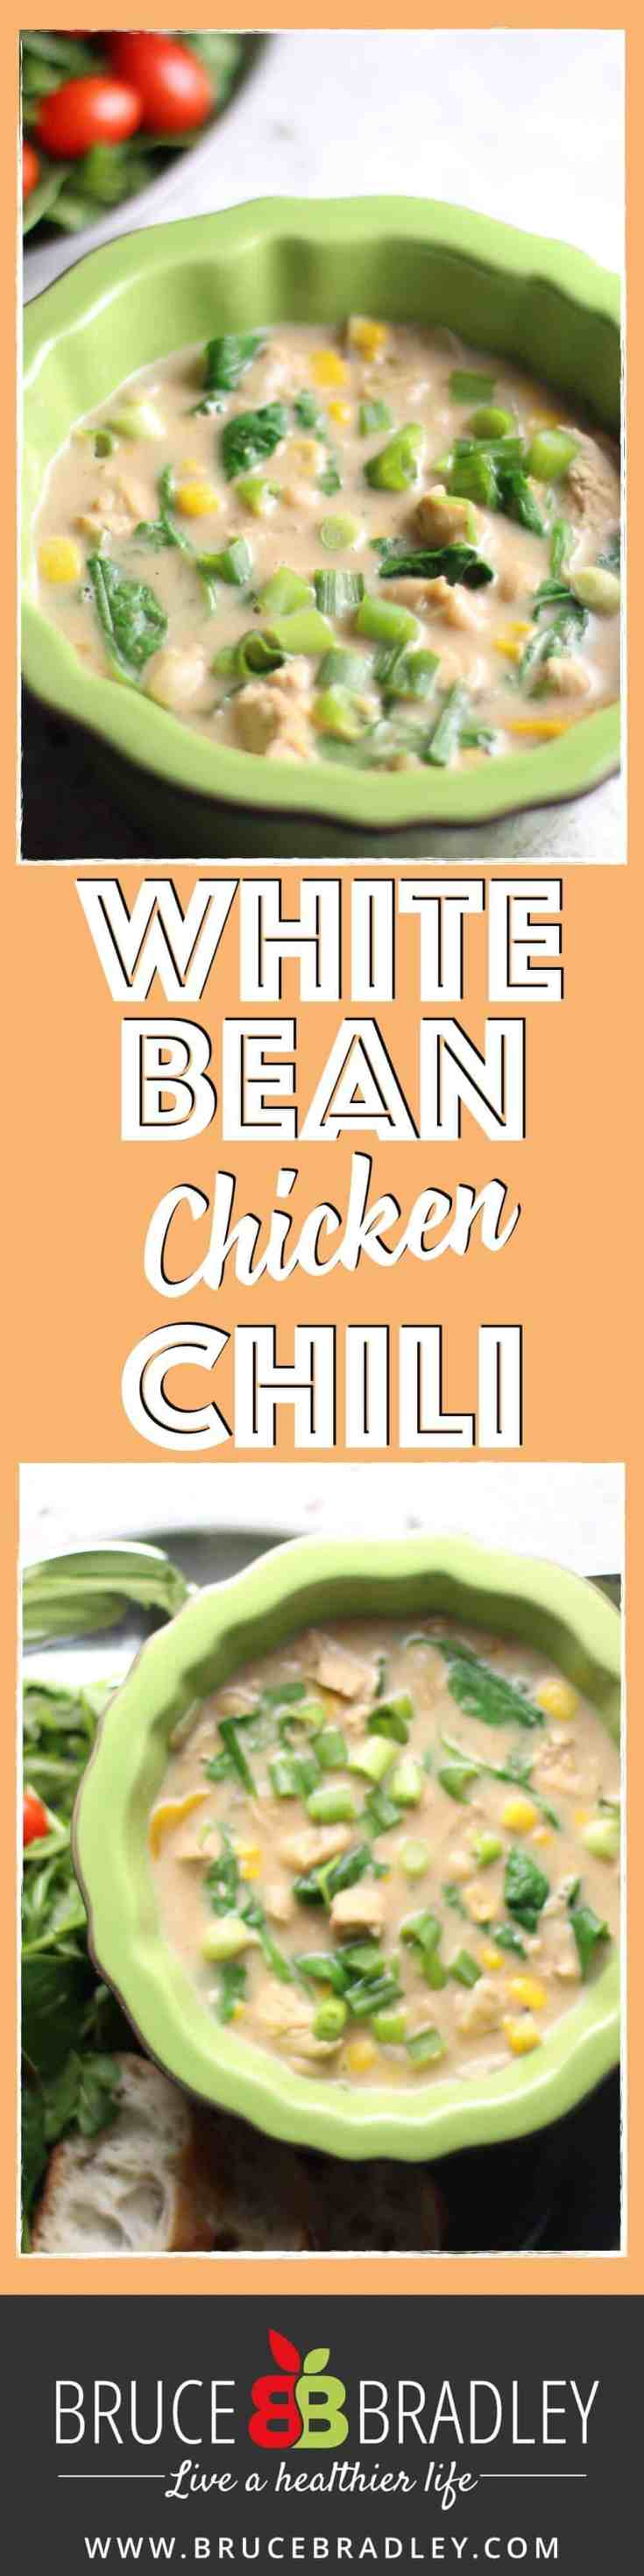 Made with fresh, real ingredients like onions, garlic, red pepper, chicken, white beans, corn, fresh greens, and a delicious blend of spices, this White Bean Chicken Chili recipe packs a flavorful punch.